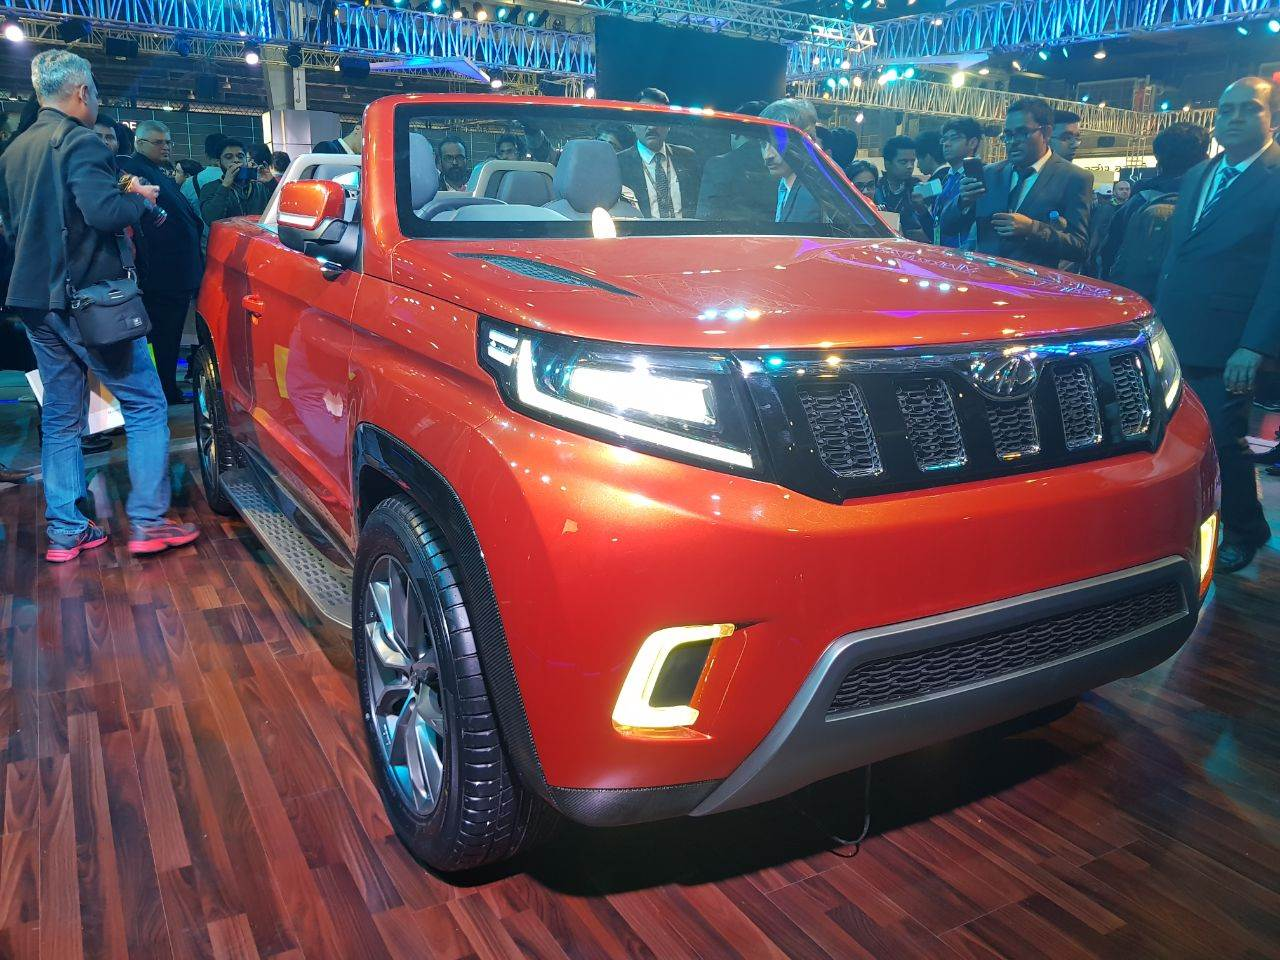 Mahindra Stinger concept image gallery